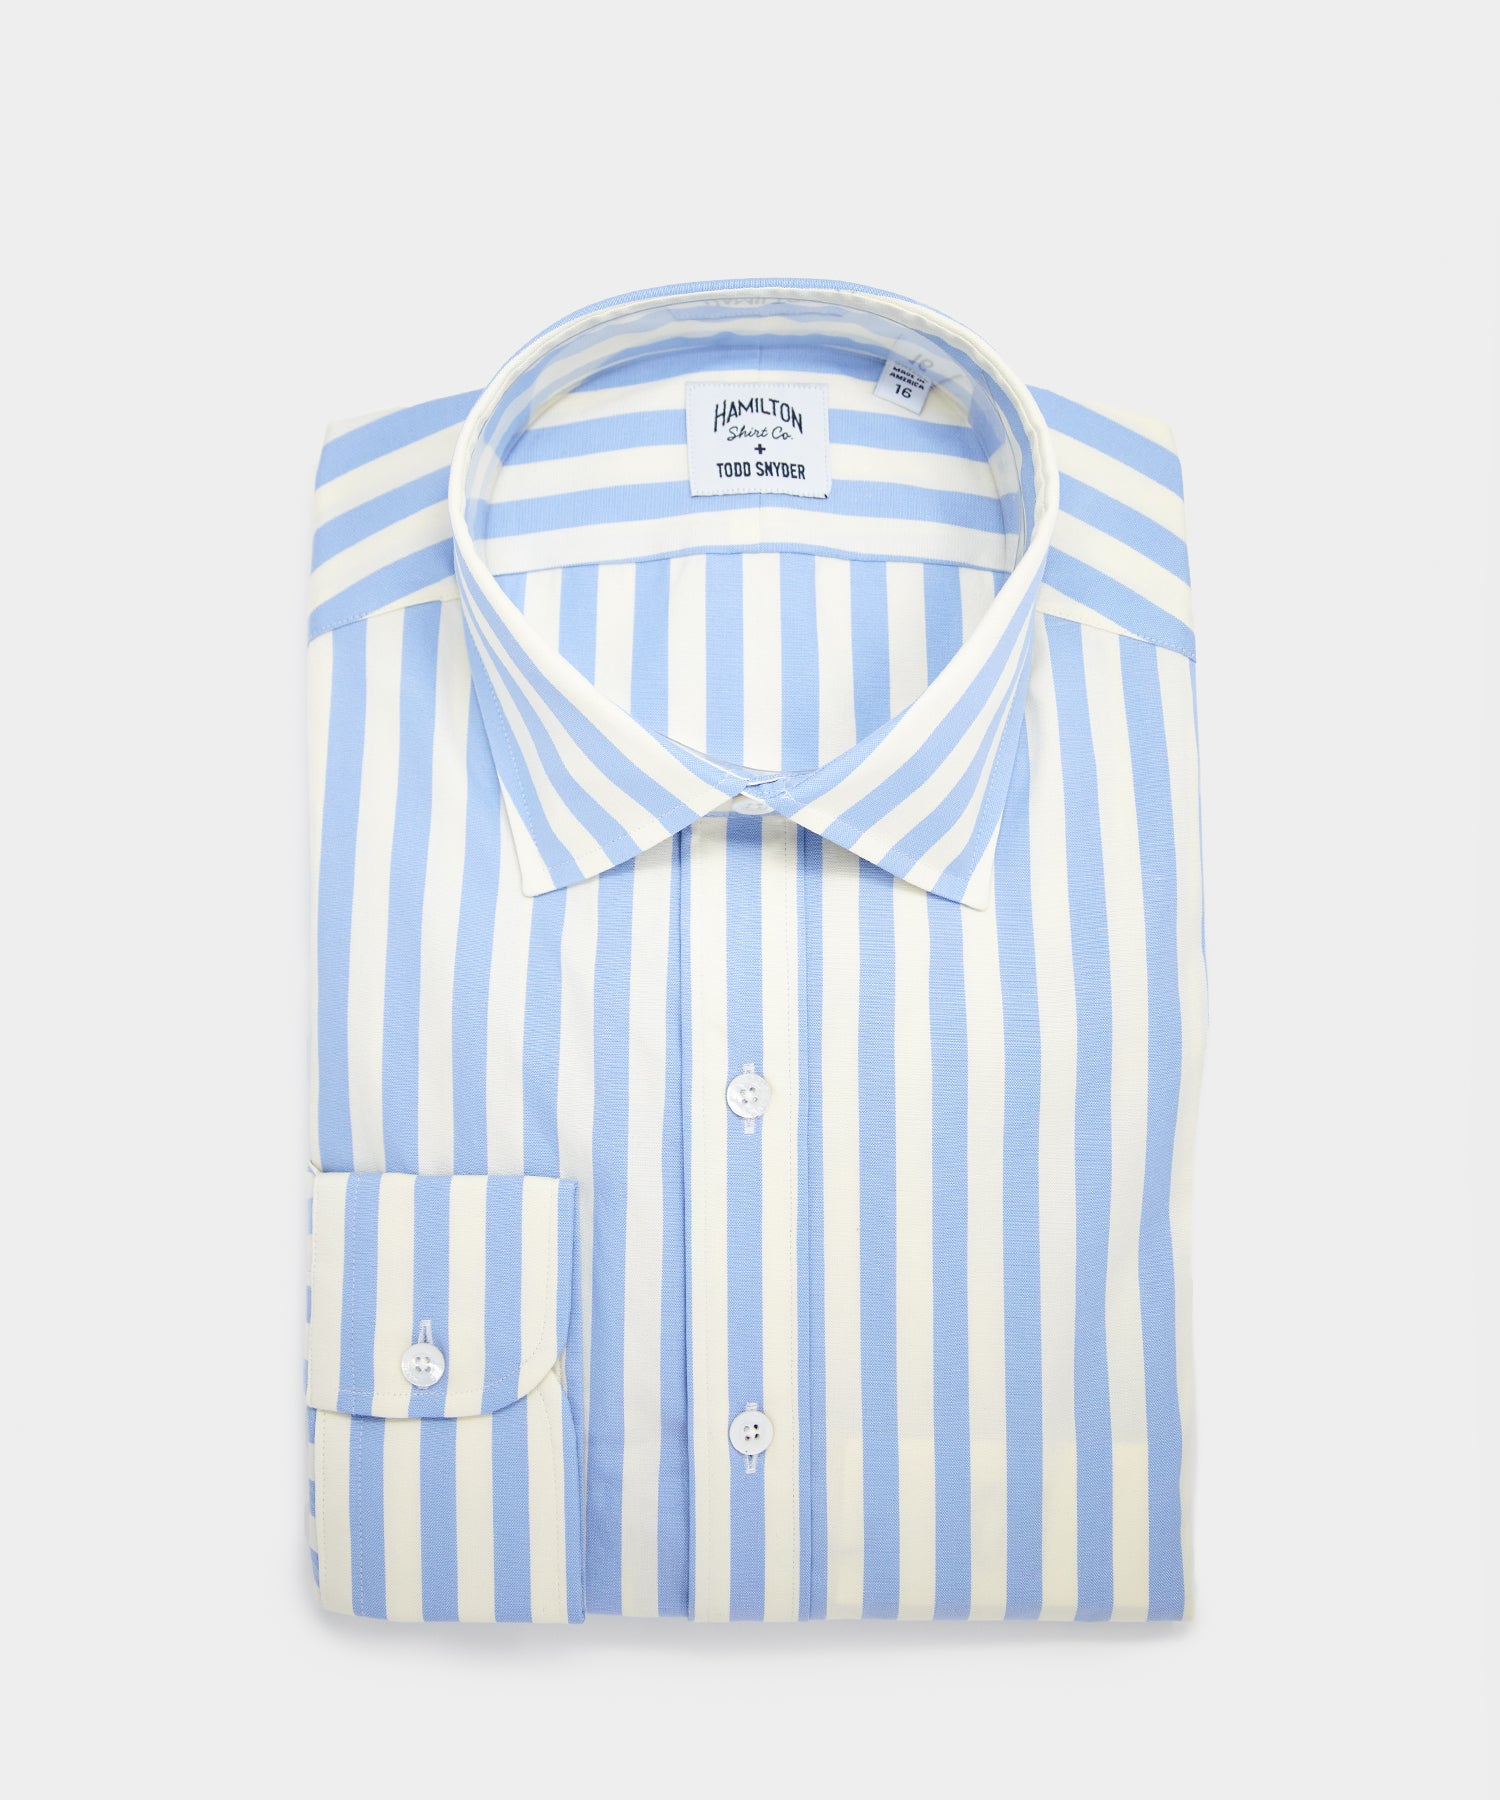 Made in USA Hamilton + Todd Snyder Vintage Stripe Poplin Dress Shirt